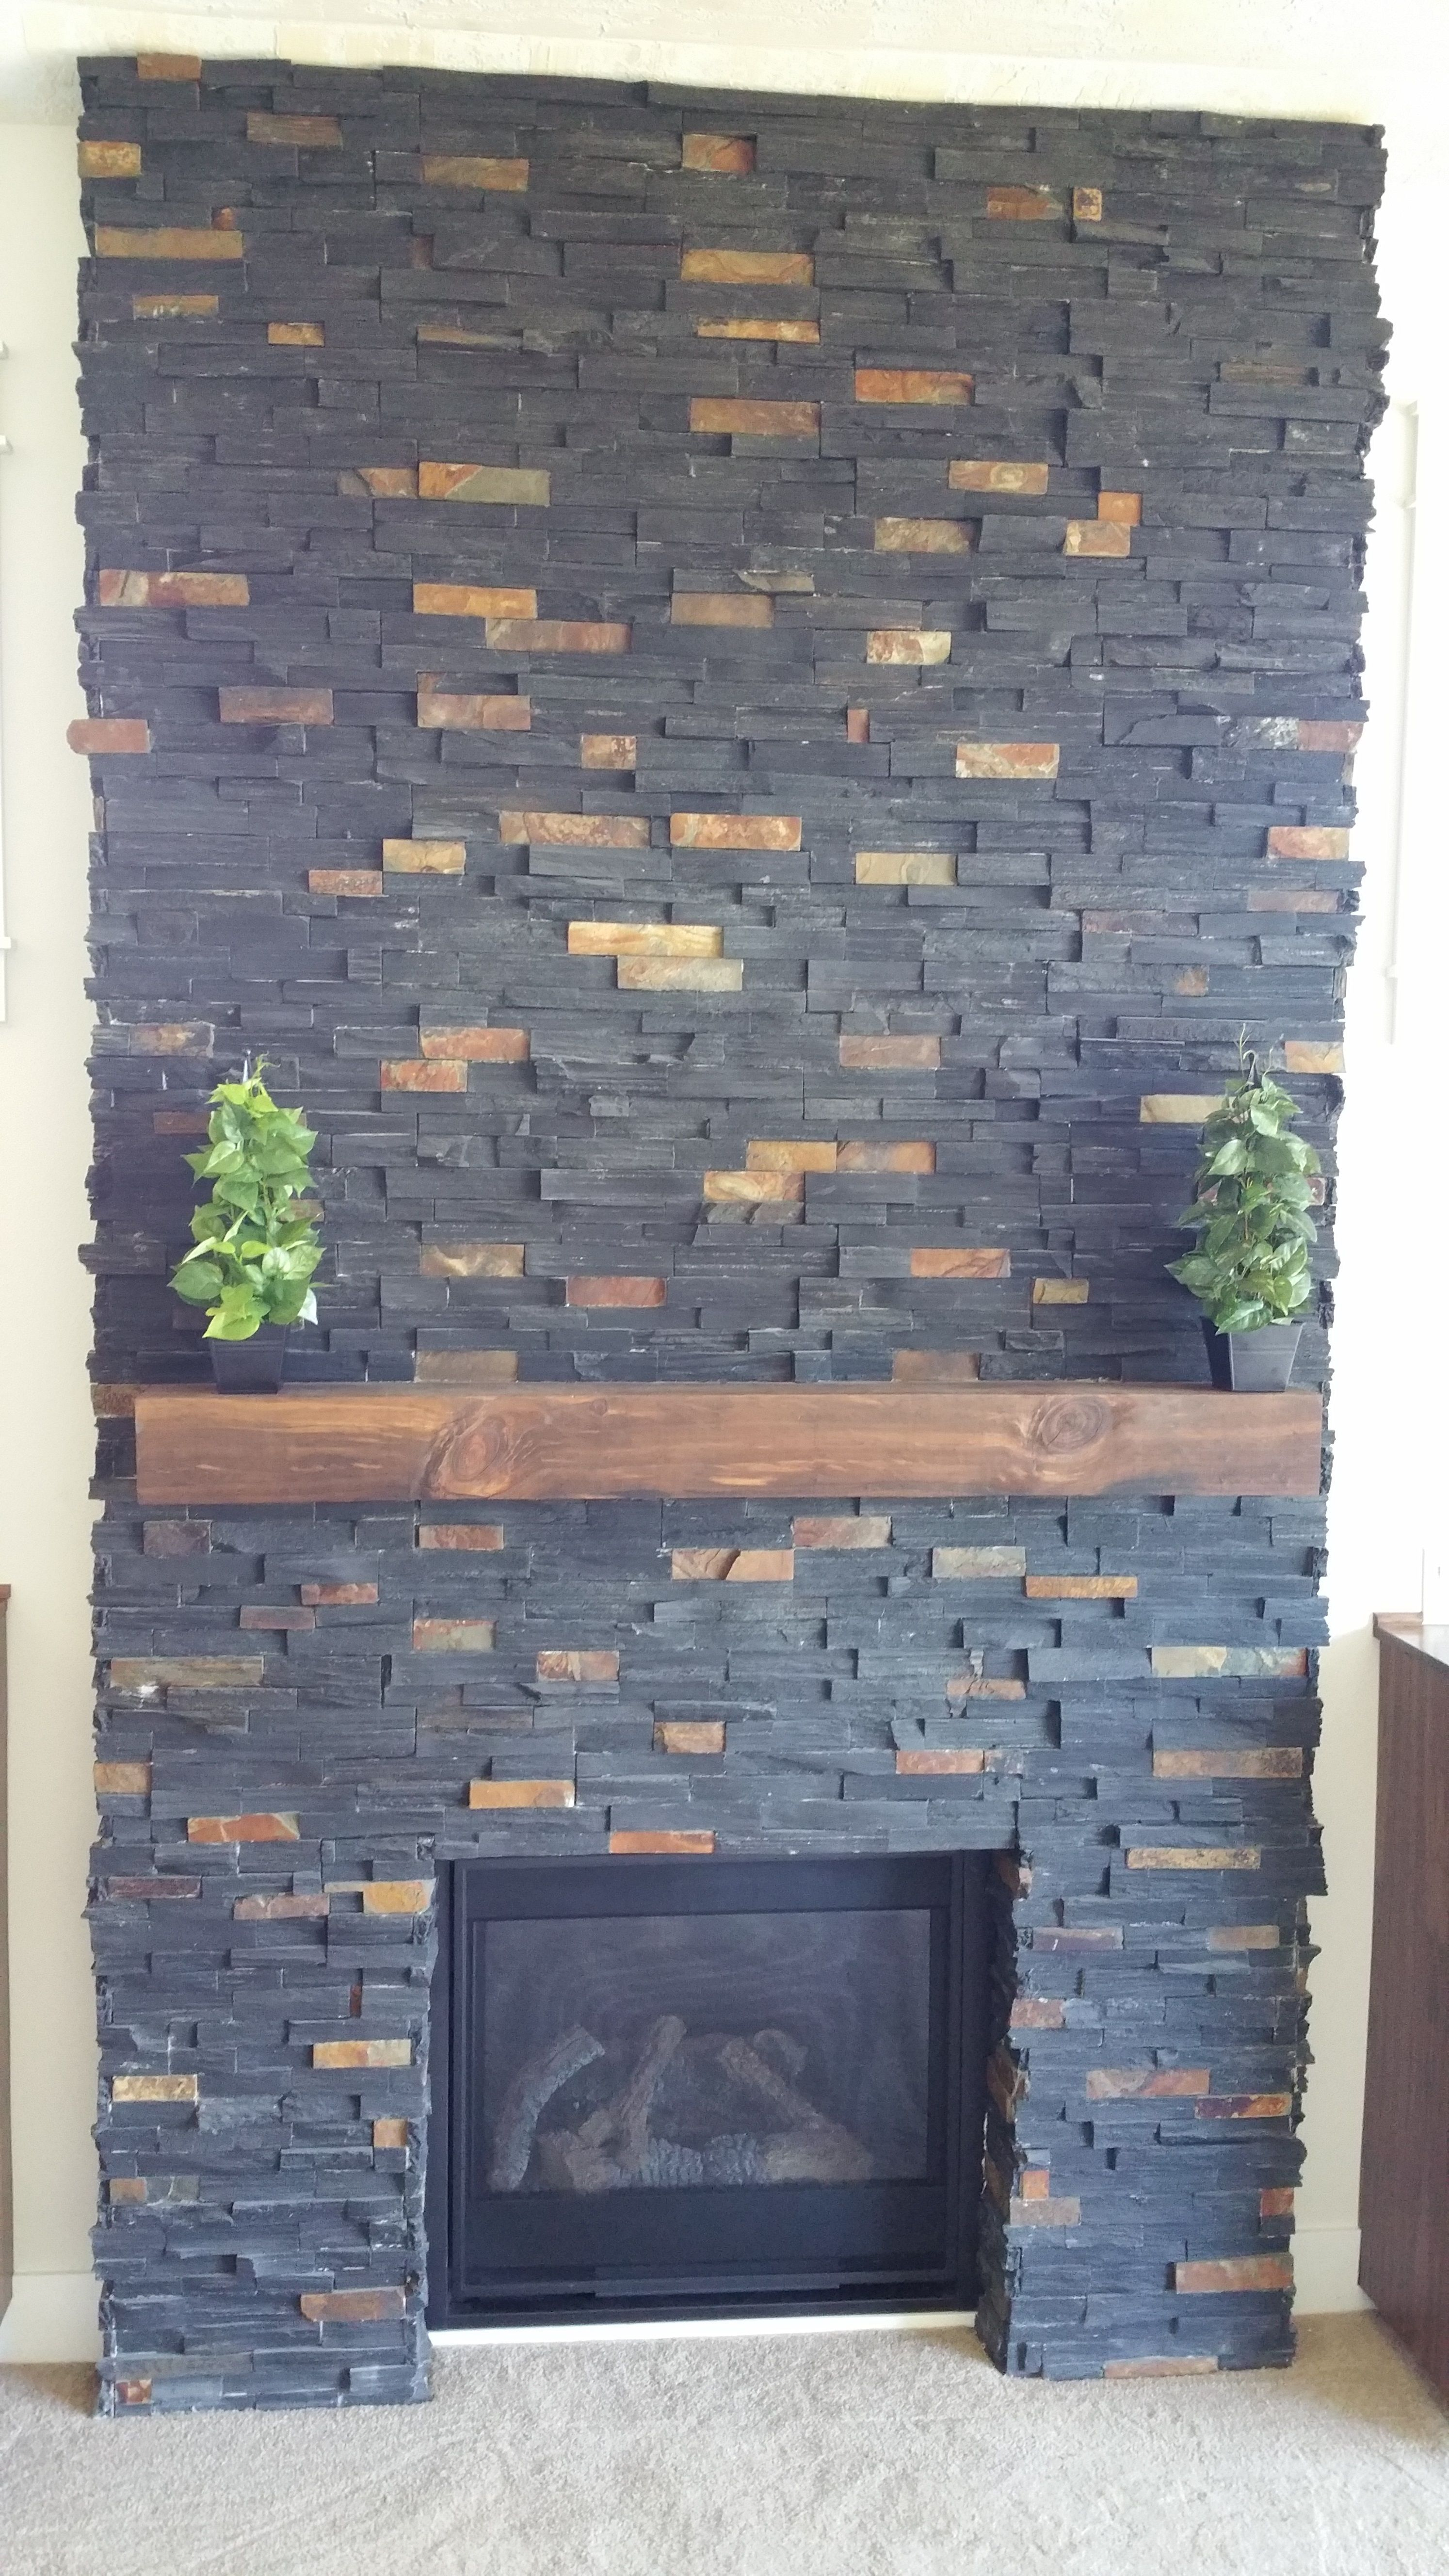 Charcoal Rust Ledger Stone Accent Wall And Fireplace Surround Black With Tones Wood Hearth Tall Tiled Natural